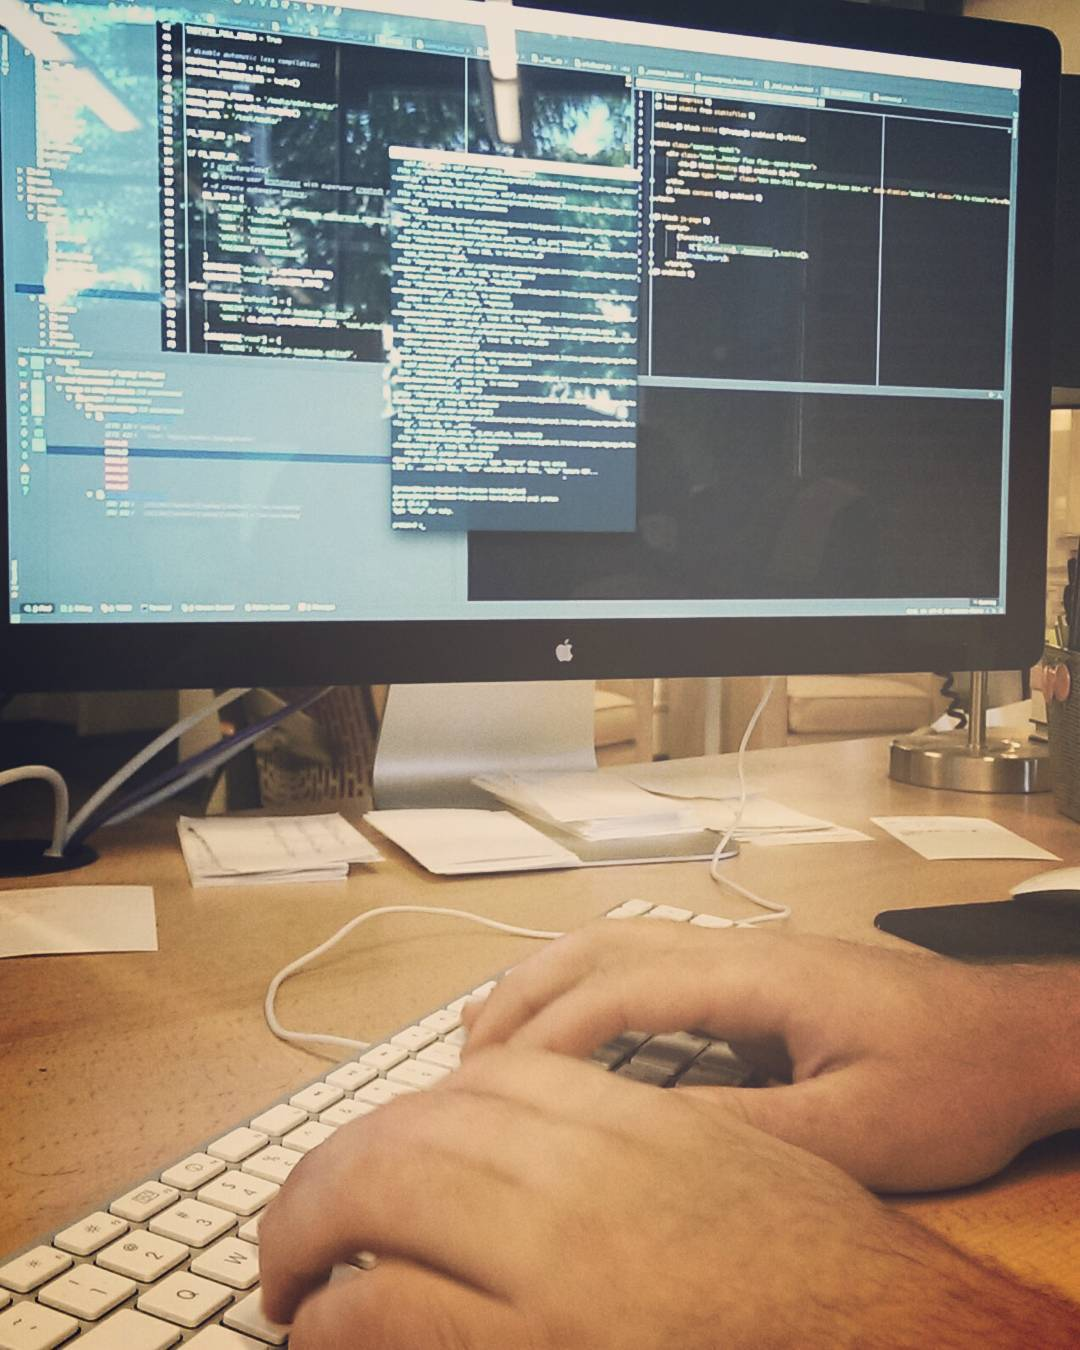 @mjonaitis is fixing the world. #devlife #neutronhq